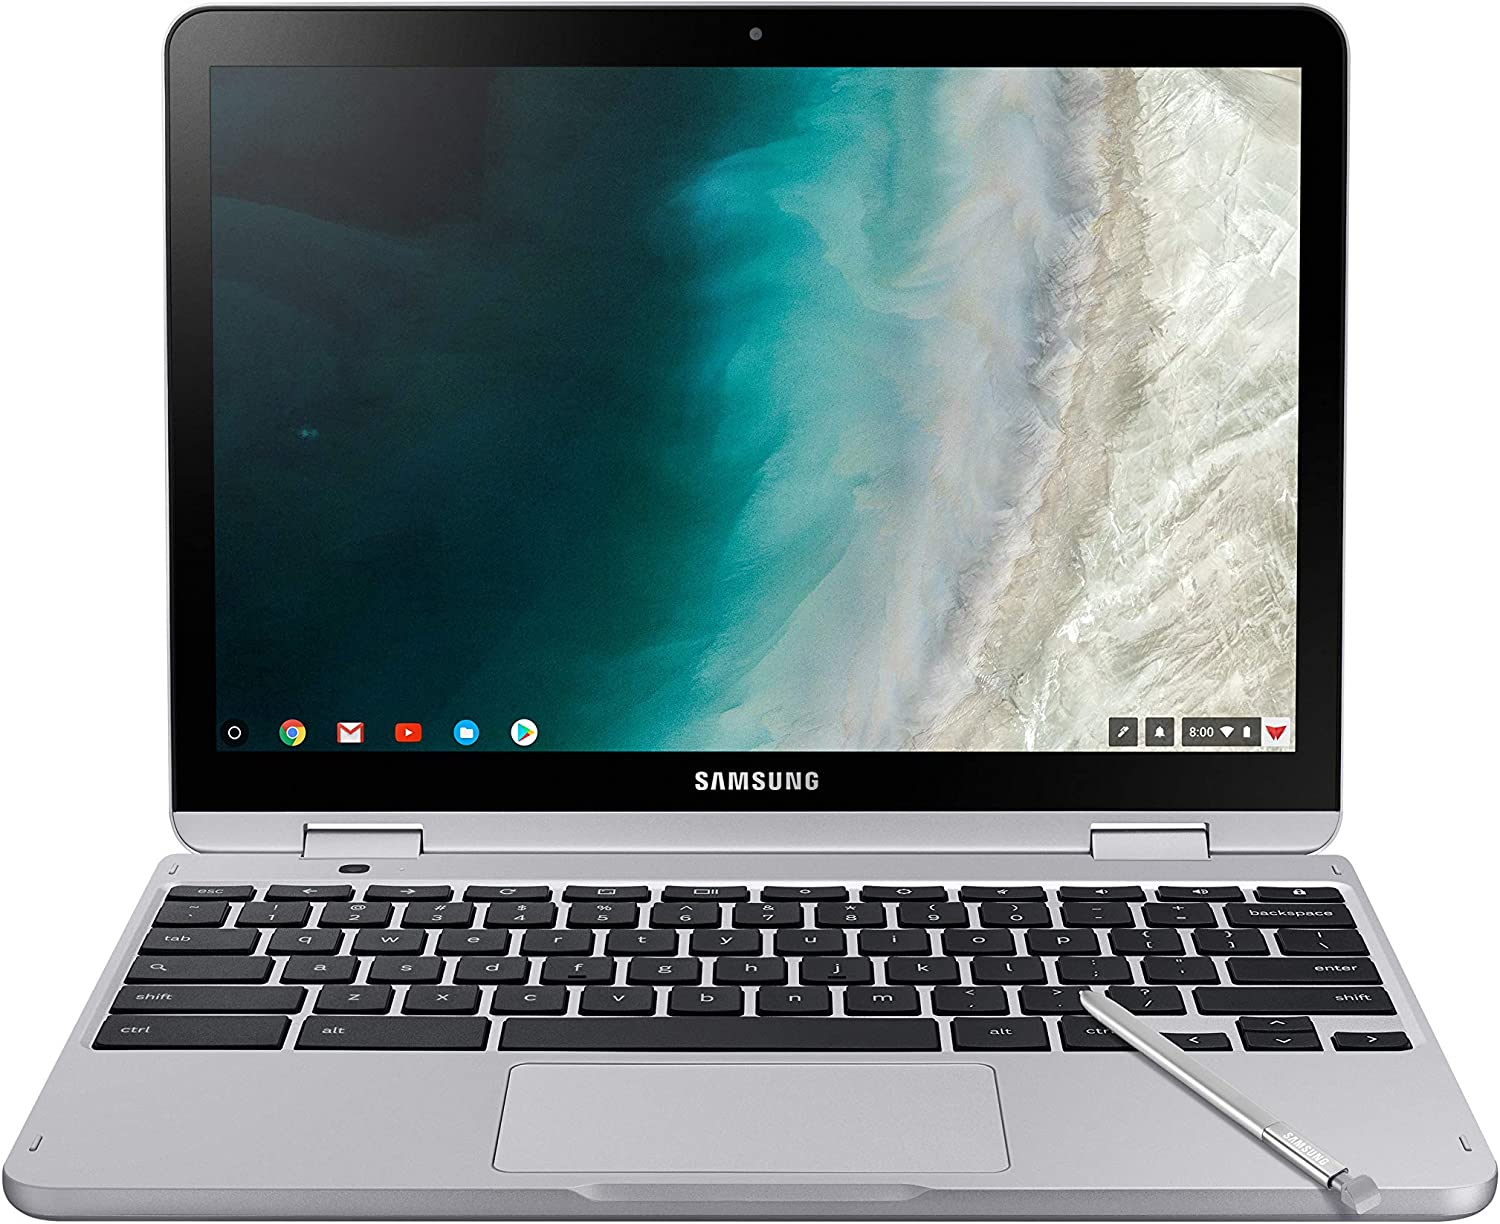 "Samsung Chromebook Plus V2 2-in-1 Laptop- 4GB RAM, 64GB eMMC, 13MP Camera, Chrome OS, 12.2"", 16:10 Aspect Ratio- XE520QAB-K03US Light Titan: Computers & Accessories"